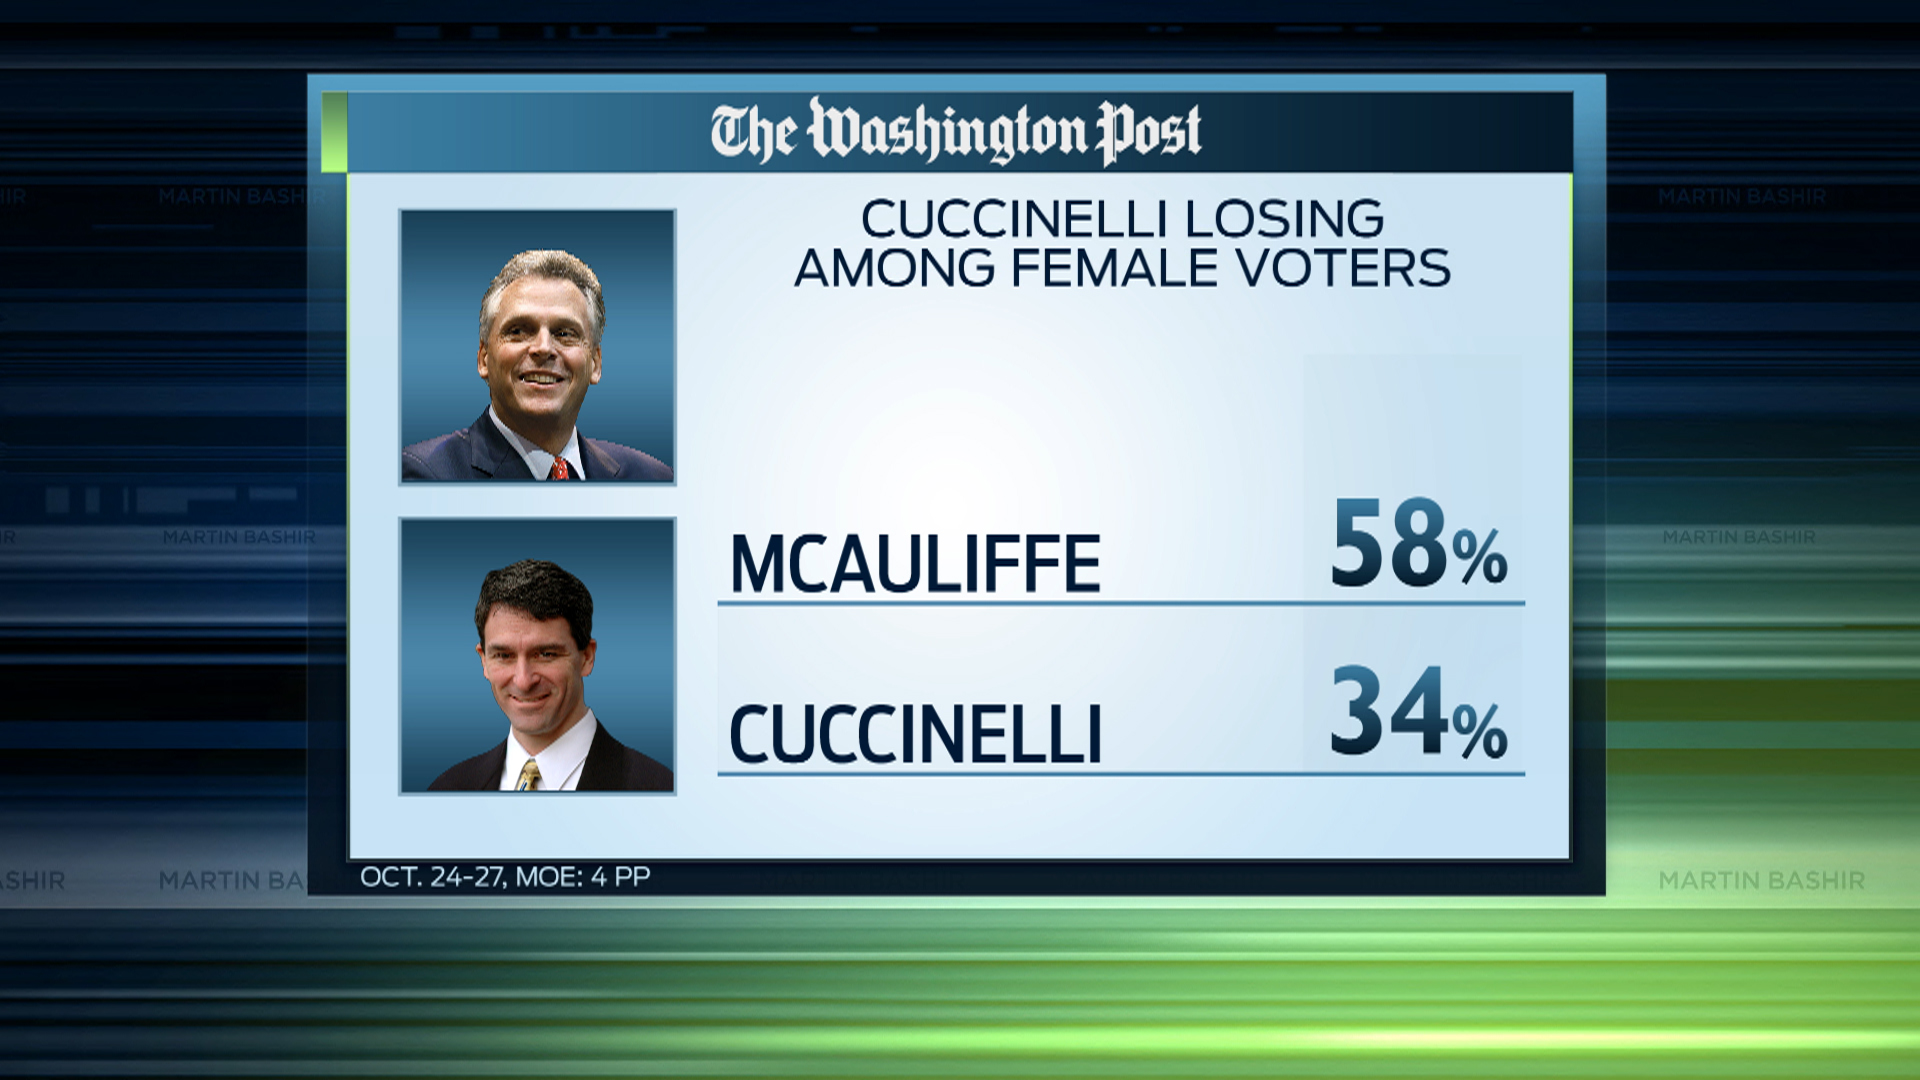 Cuccinelli/Jackson embody GOP's problems